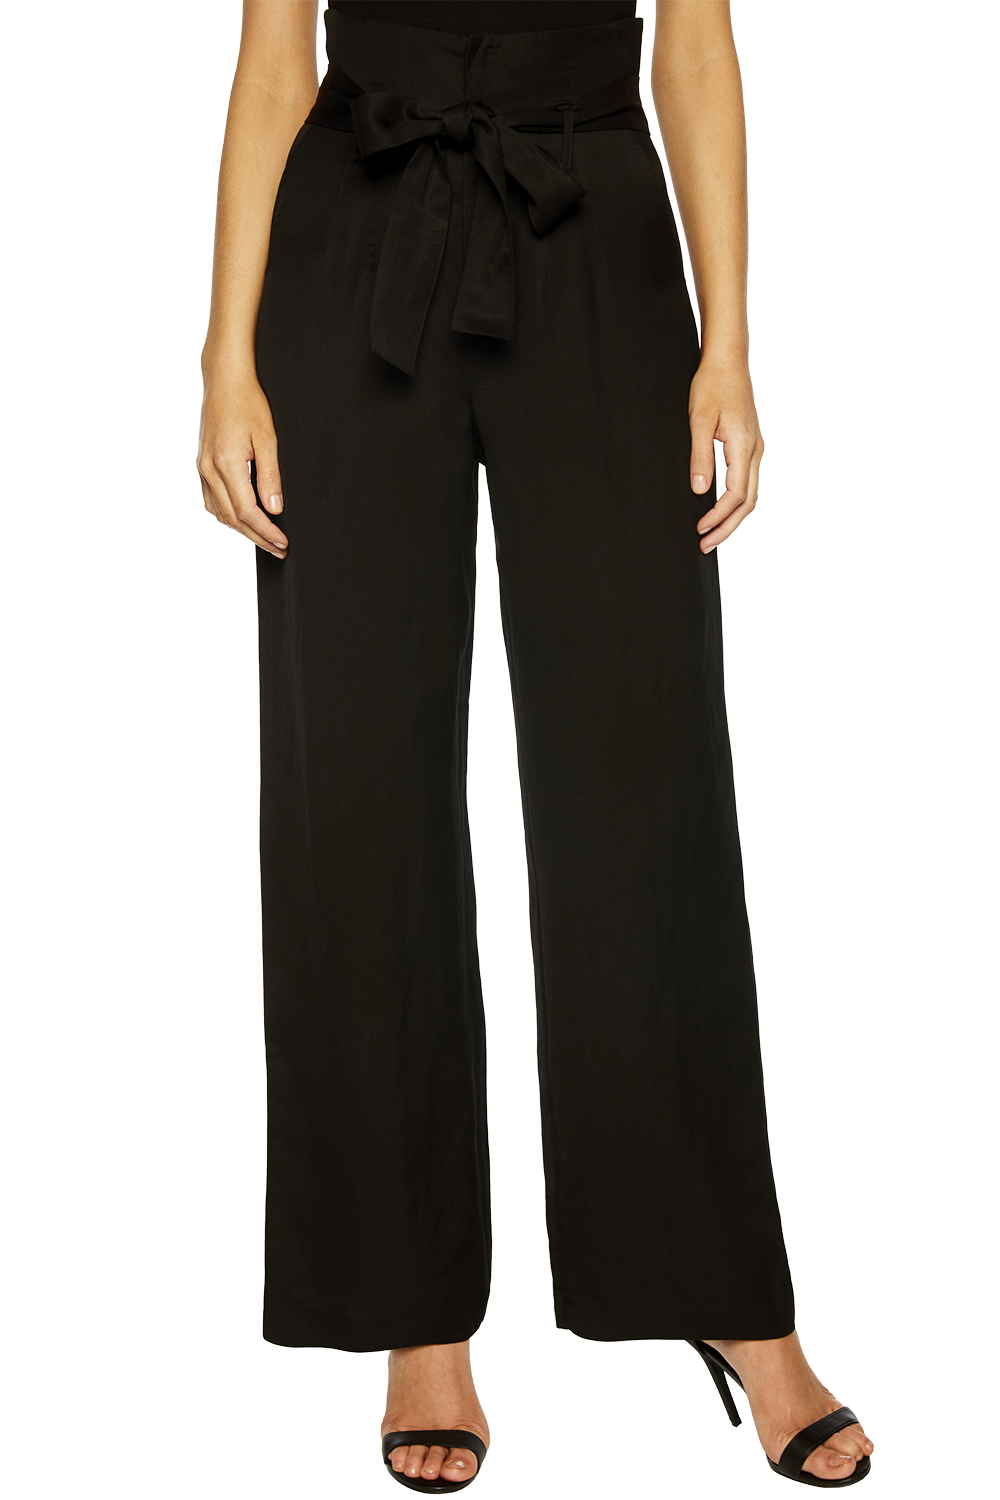 CHARLENE TIE PANT in colour CAVIAR